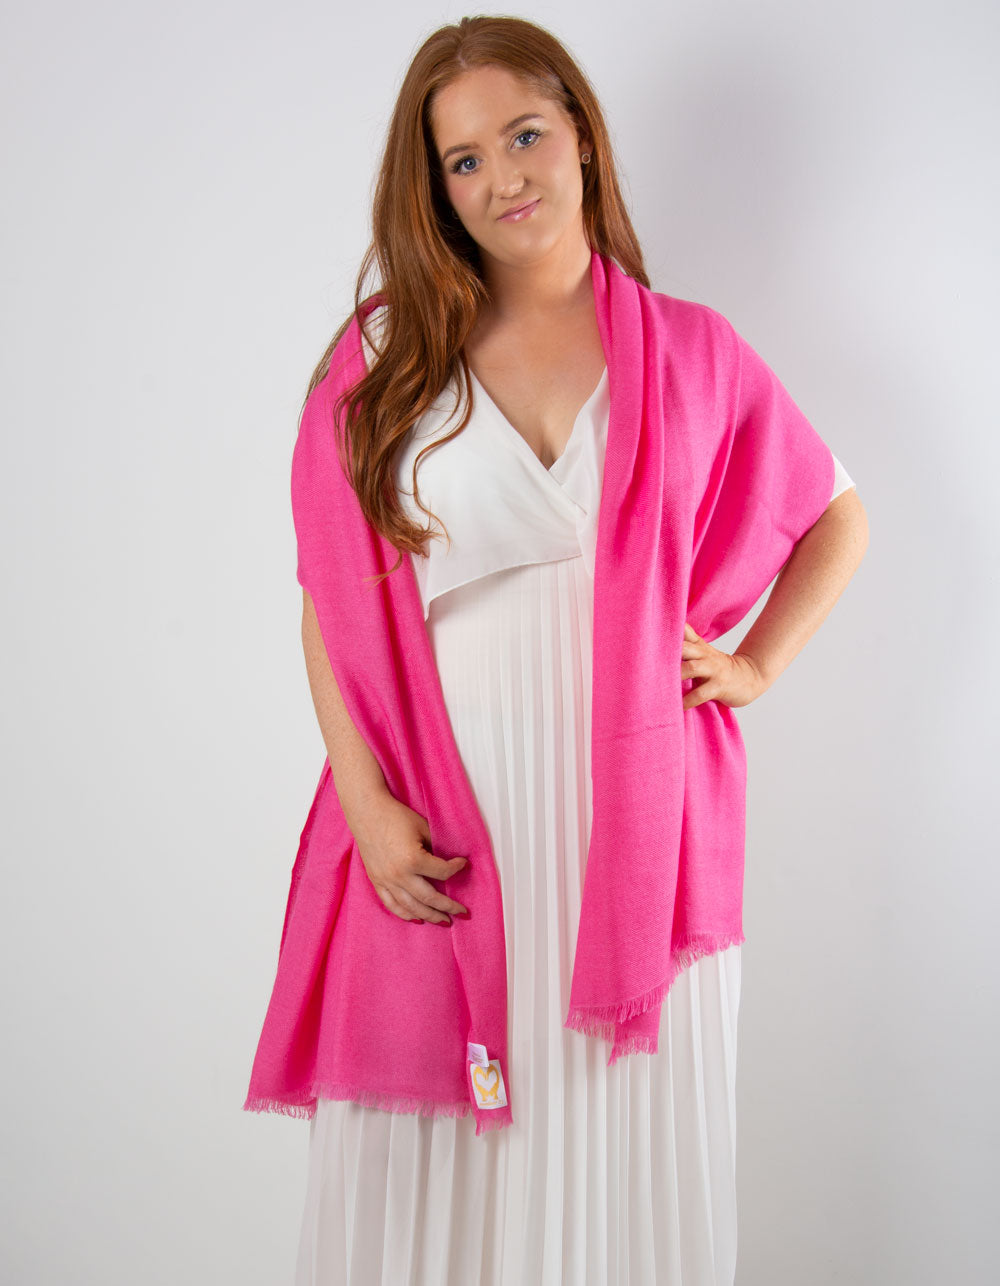 an image showing a cashmere wedding pashmina in hot pink